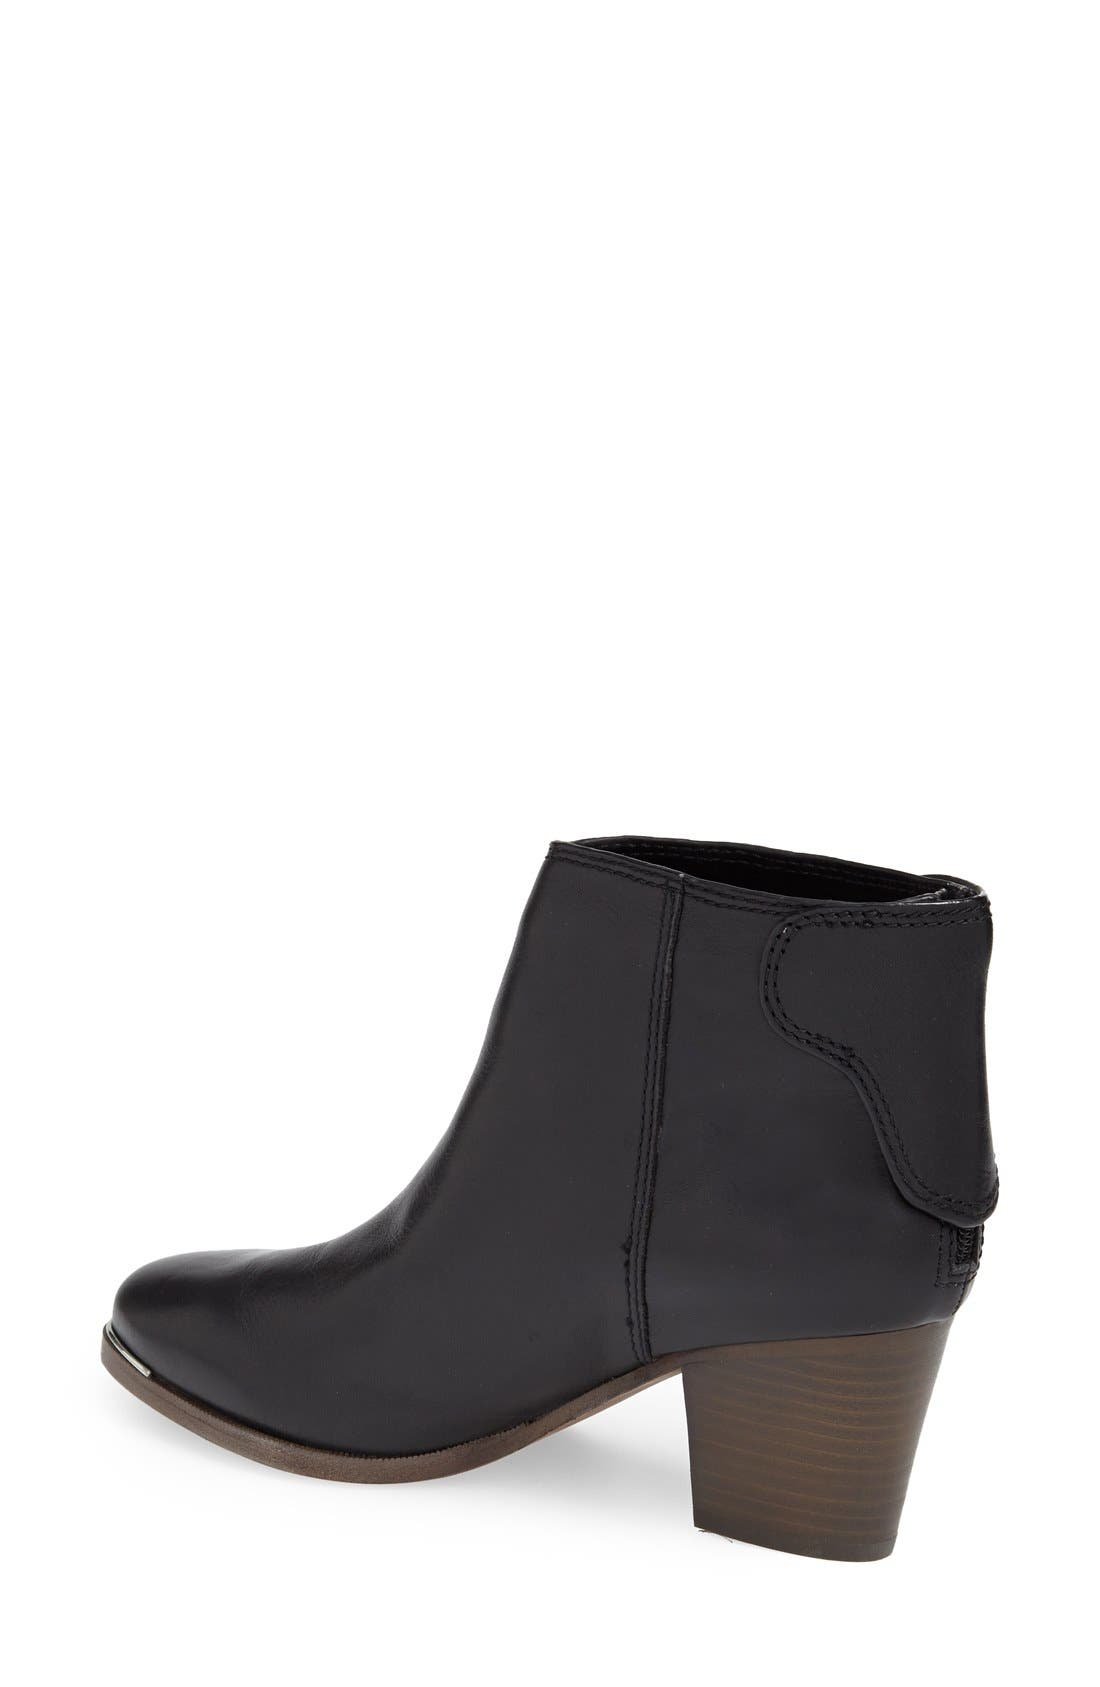 Alternate Image 2  - COACH 'Waldorf' Leather Bootie (Women)